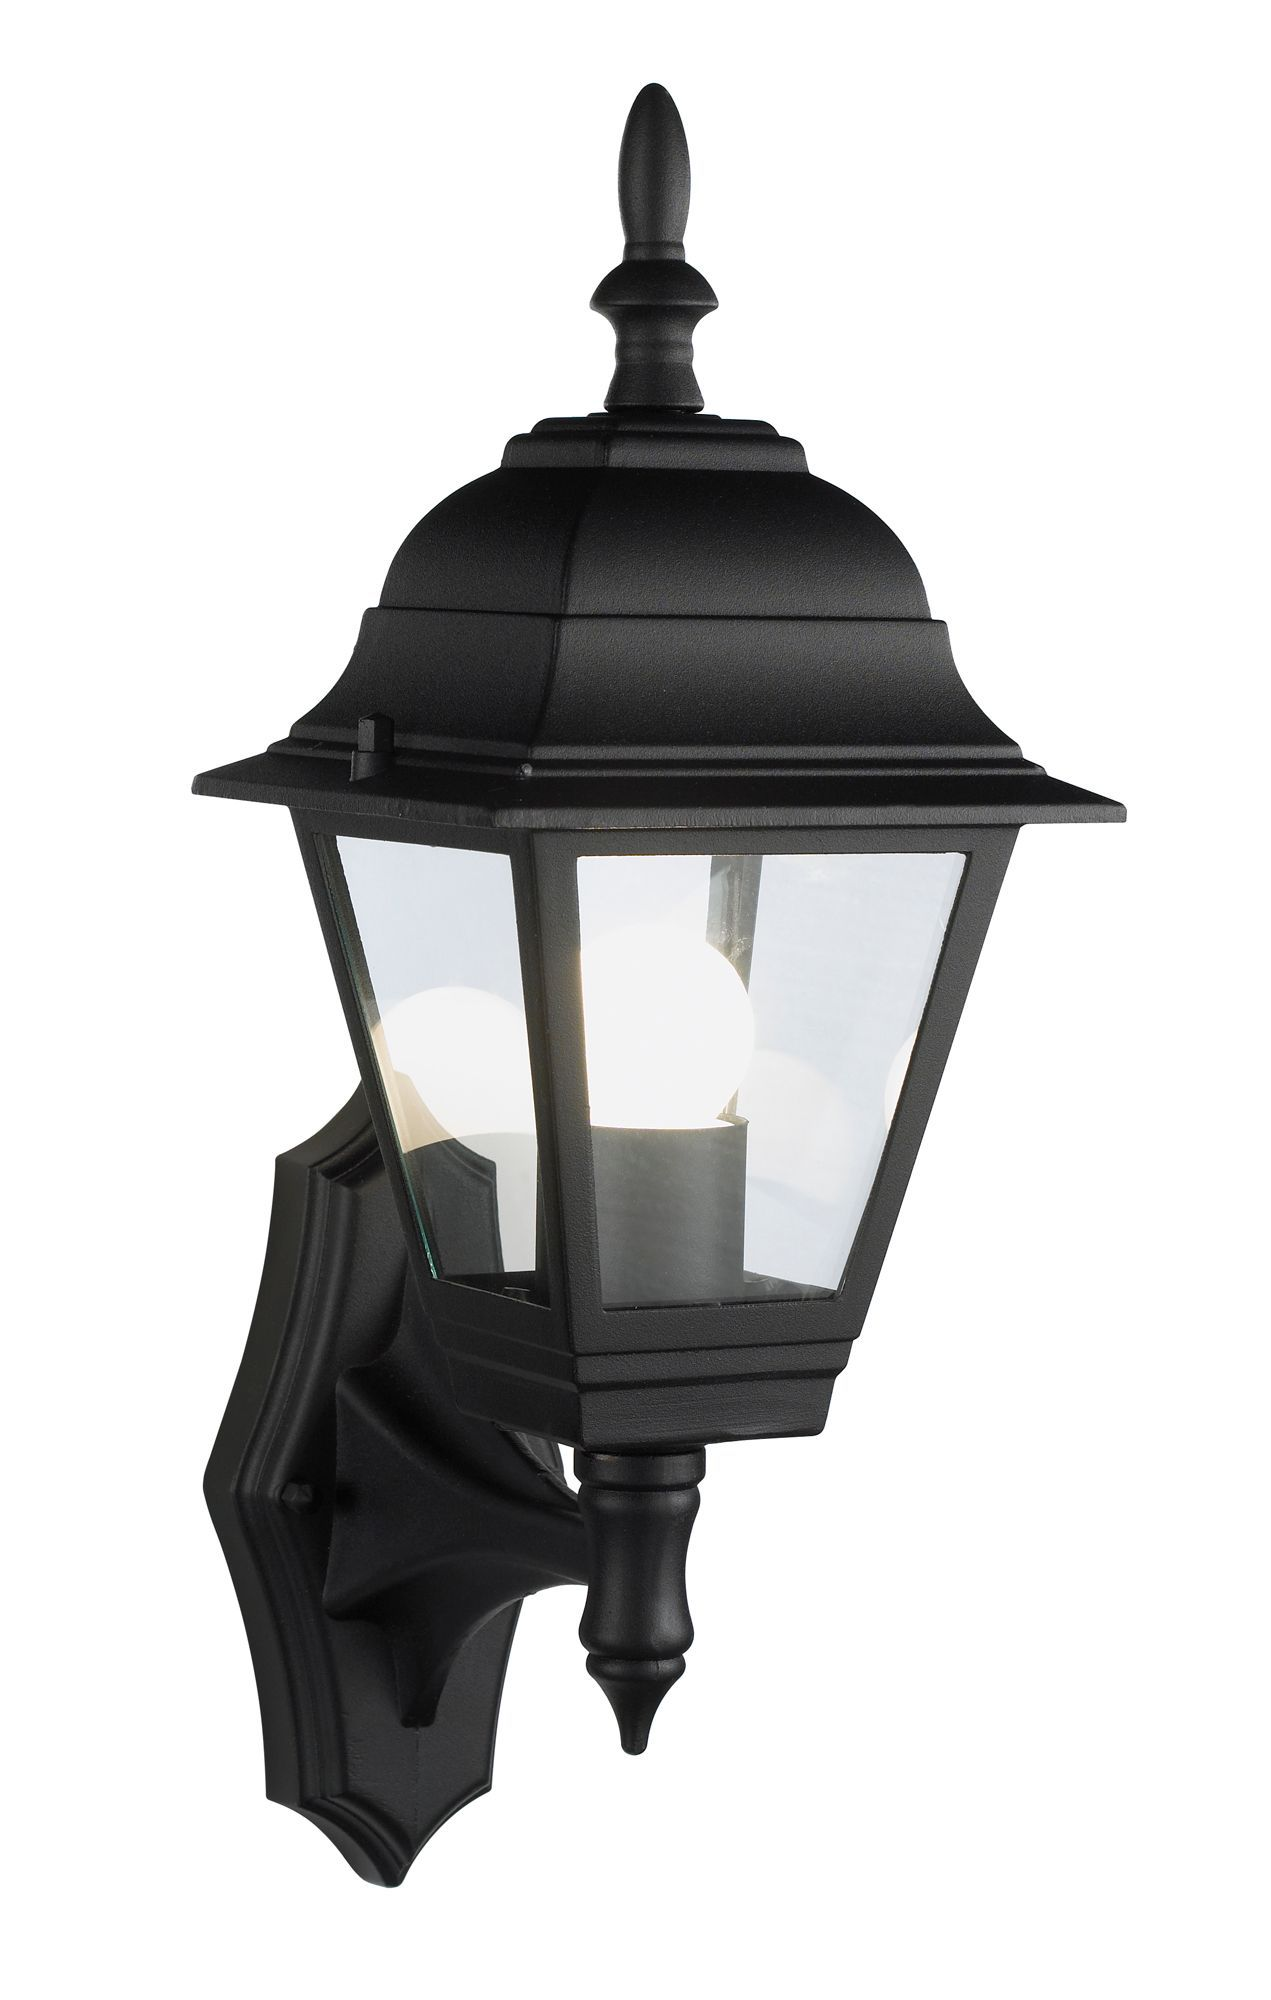 Bq penarven black mains powered external wall lantern bq penarven black mains powered external wall lantern departments diy at bq aloadofball Choice Image